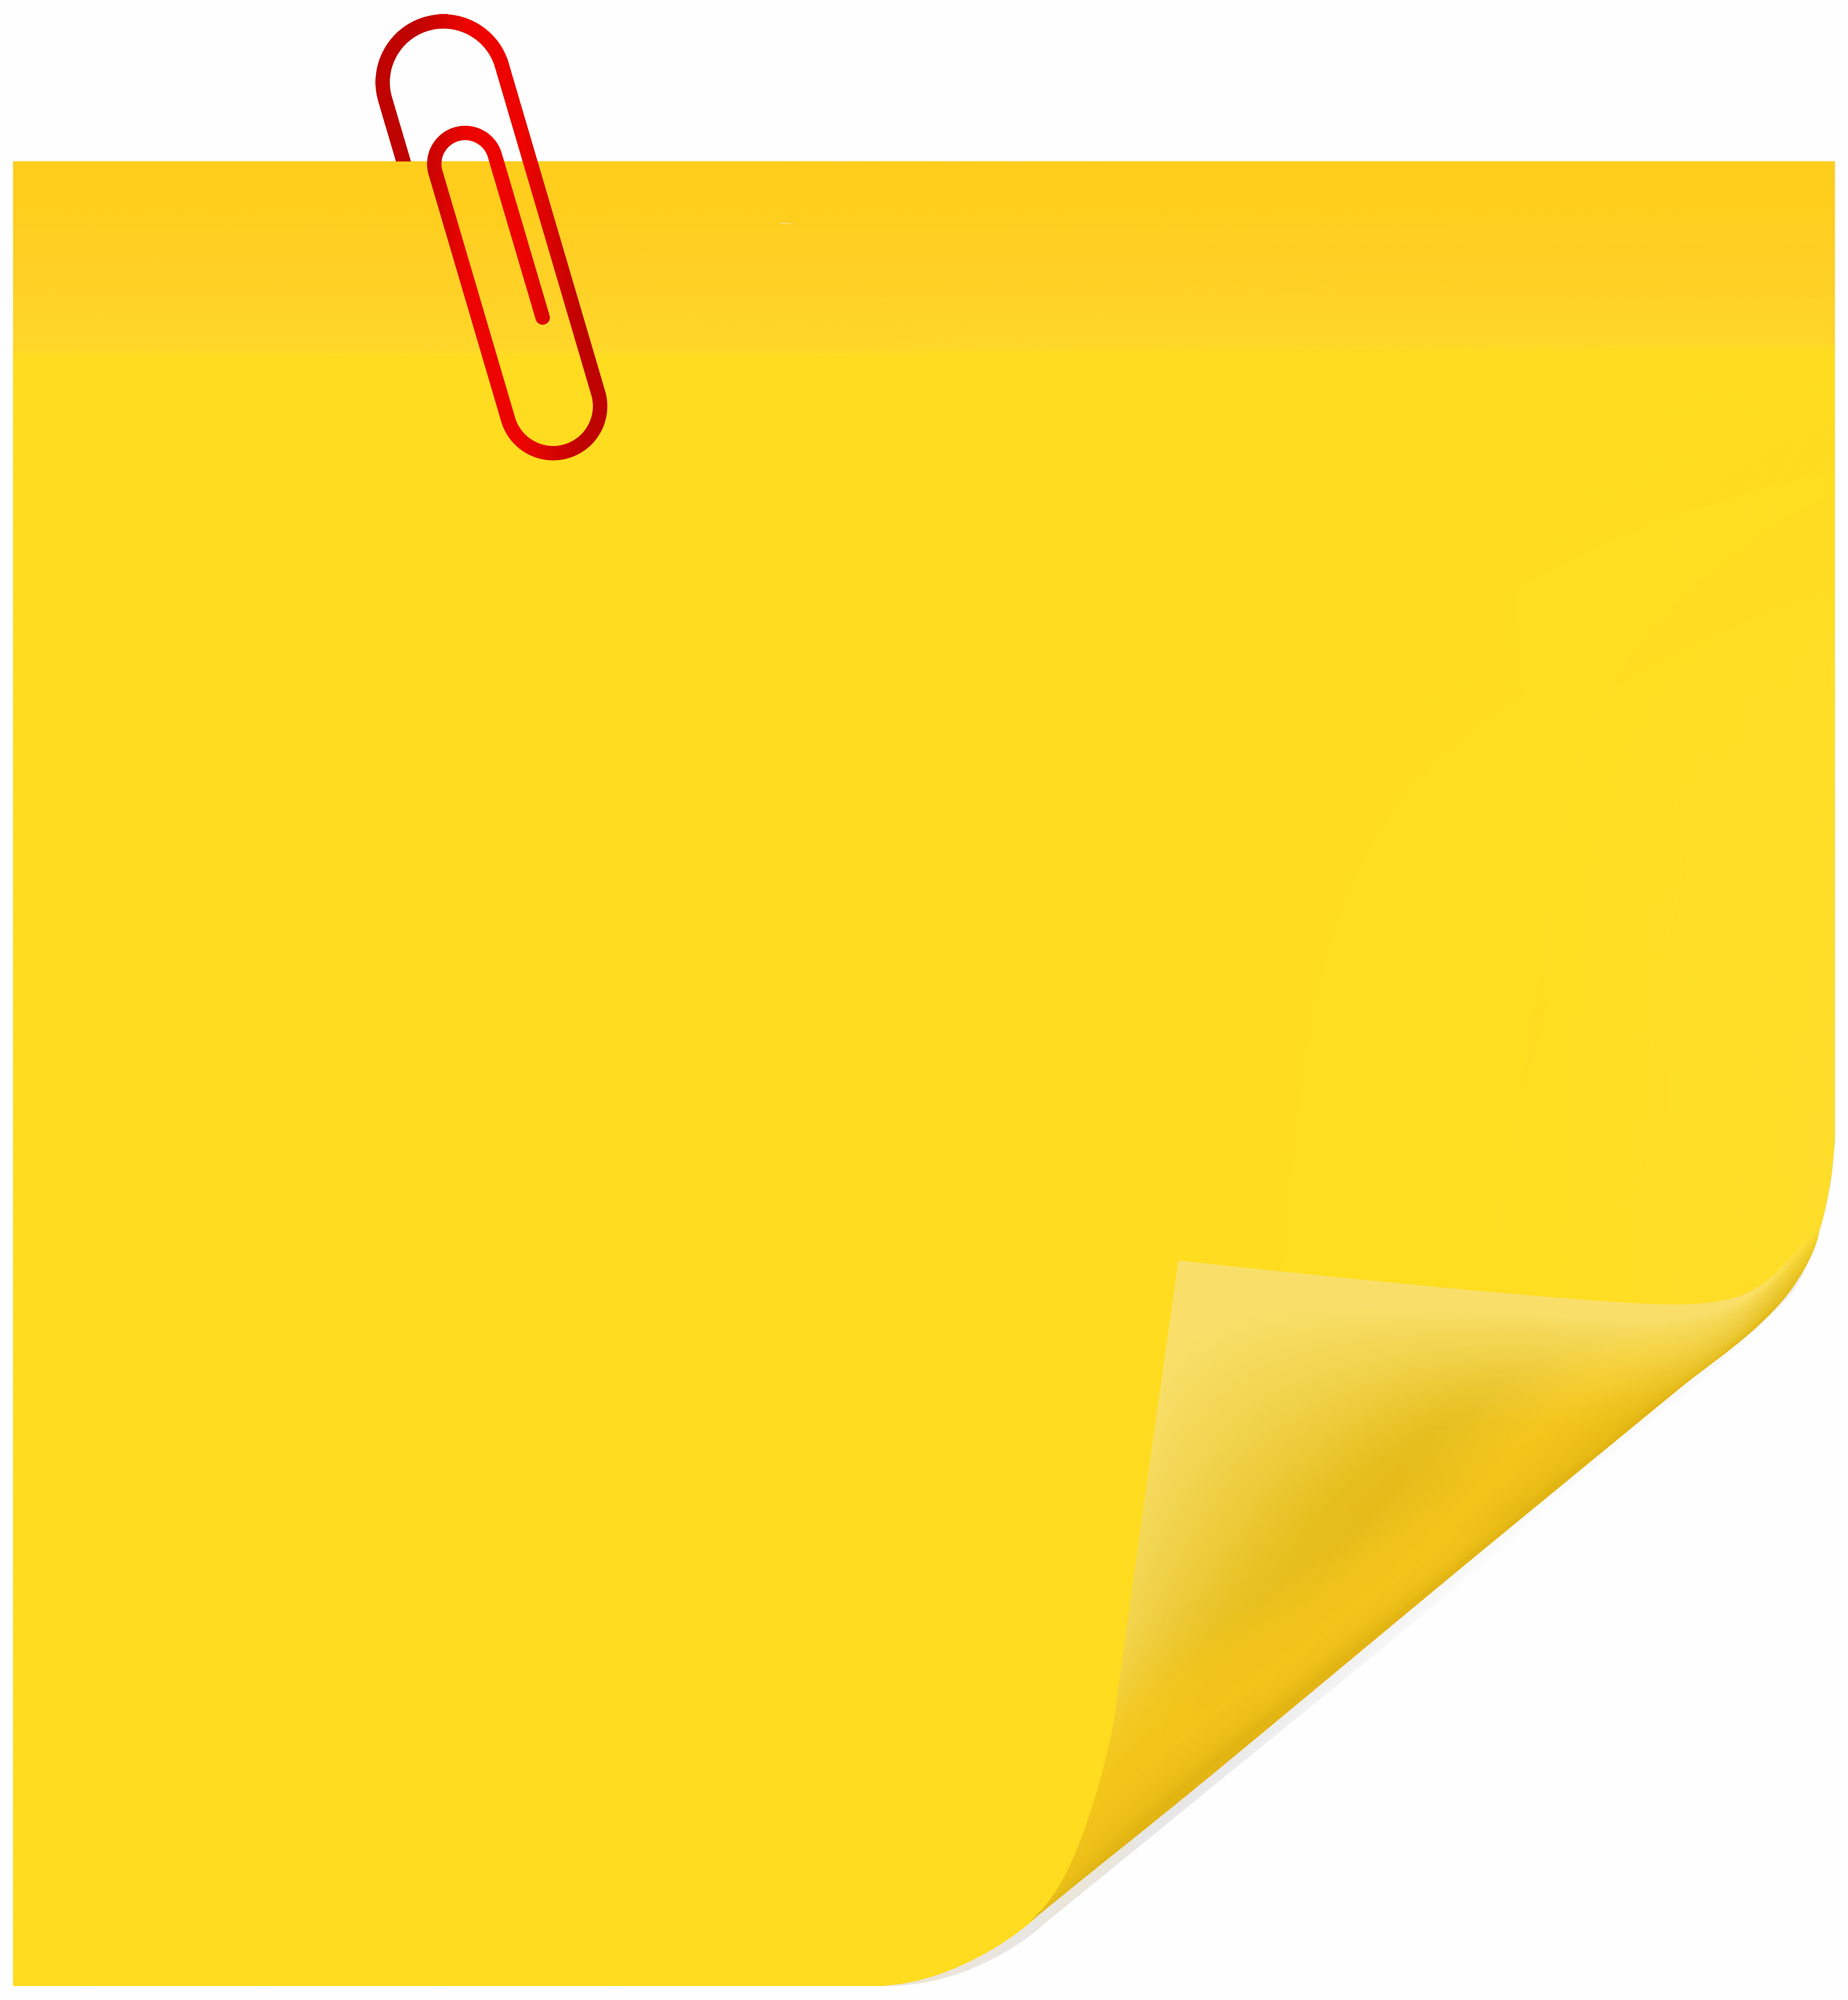 Paperclip colored